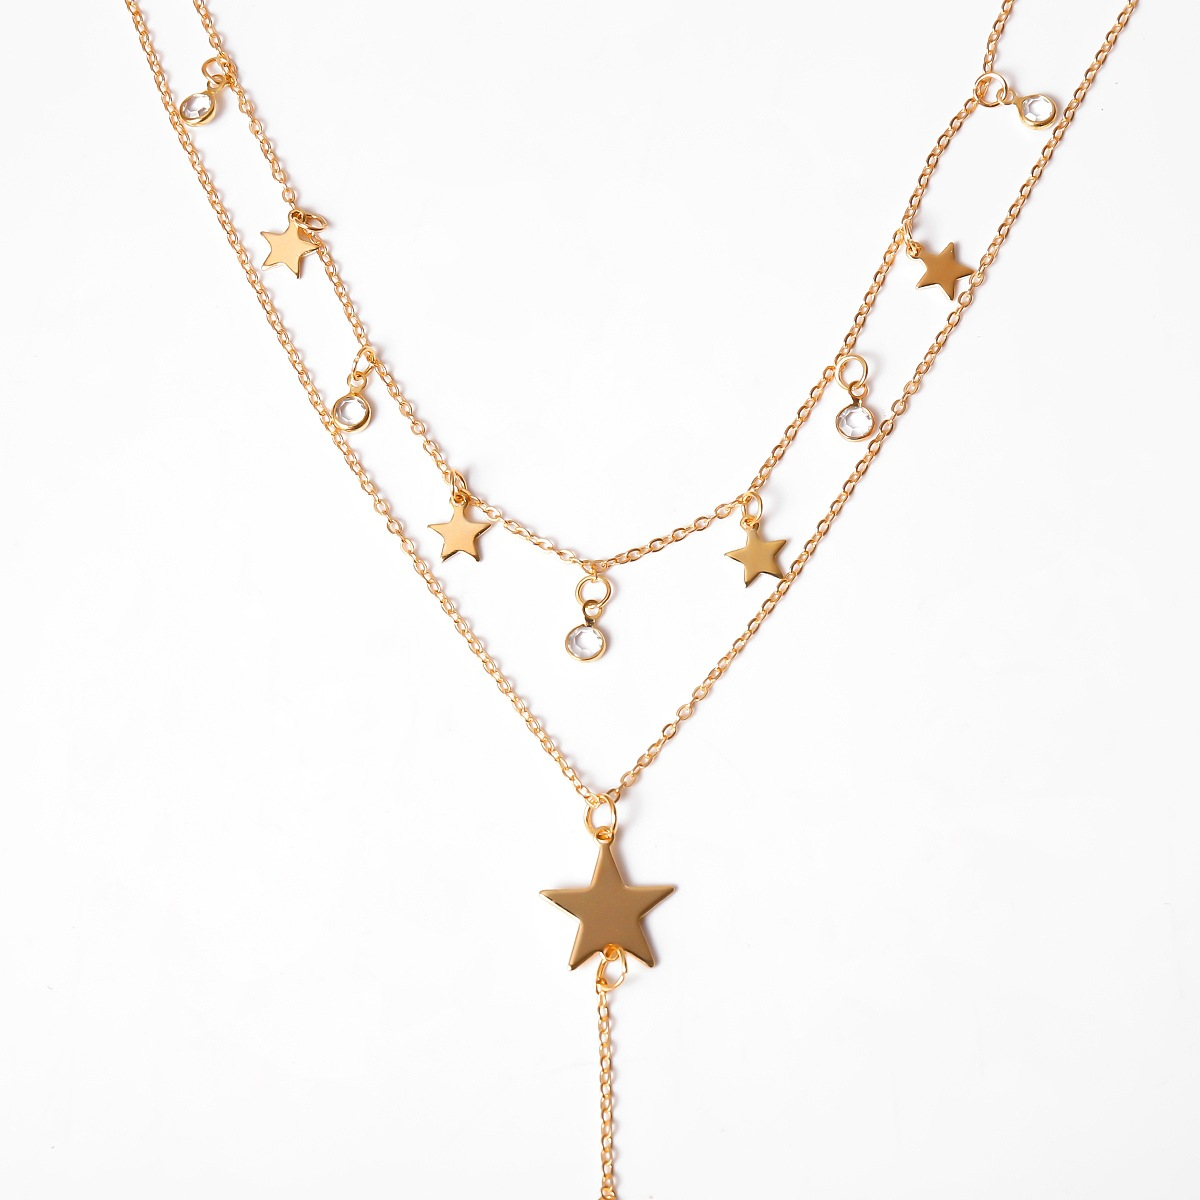 Five Pointed Star Tassel Thin Chain Multilayer Fashion Jewelry Female Choker Necklaces Pendant Necklaces